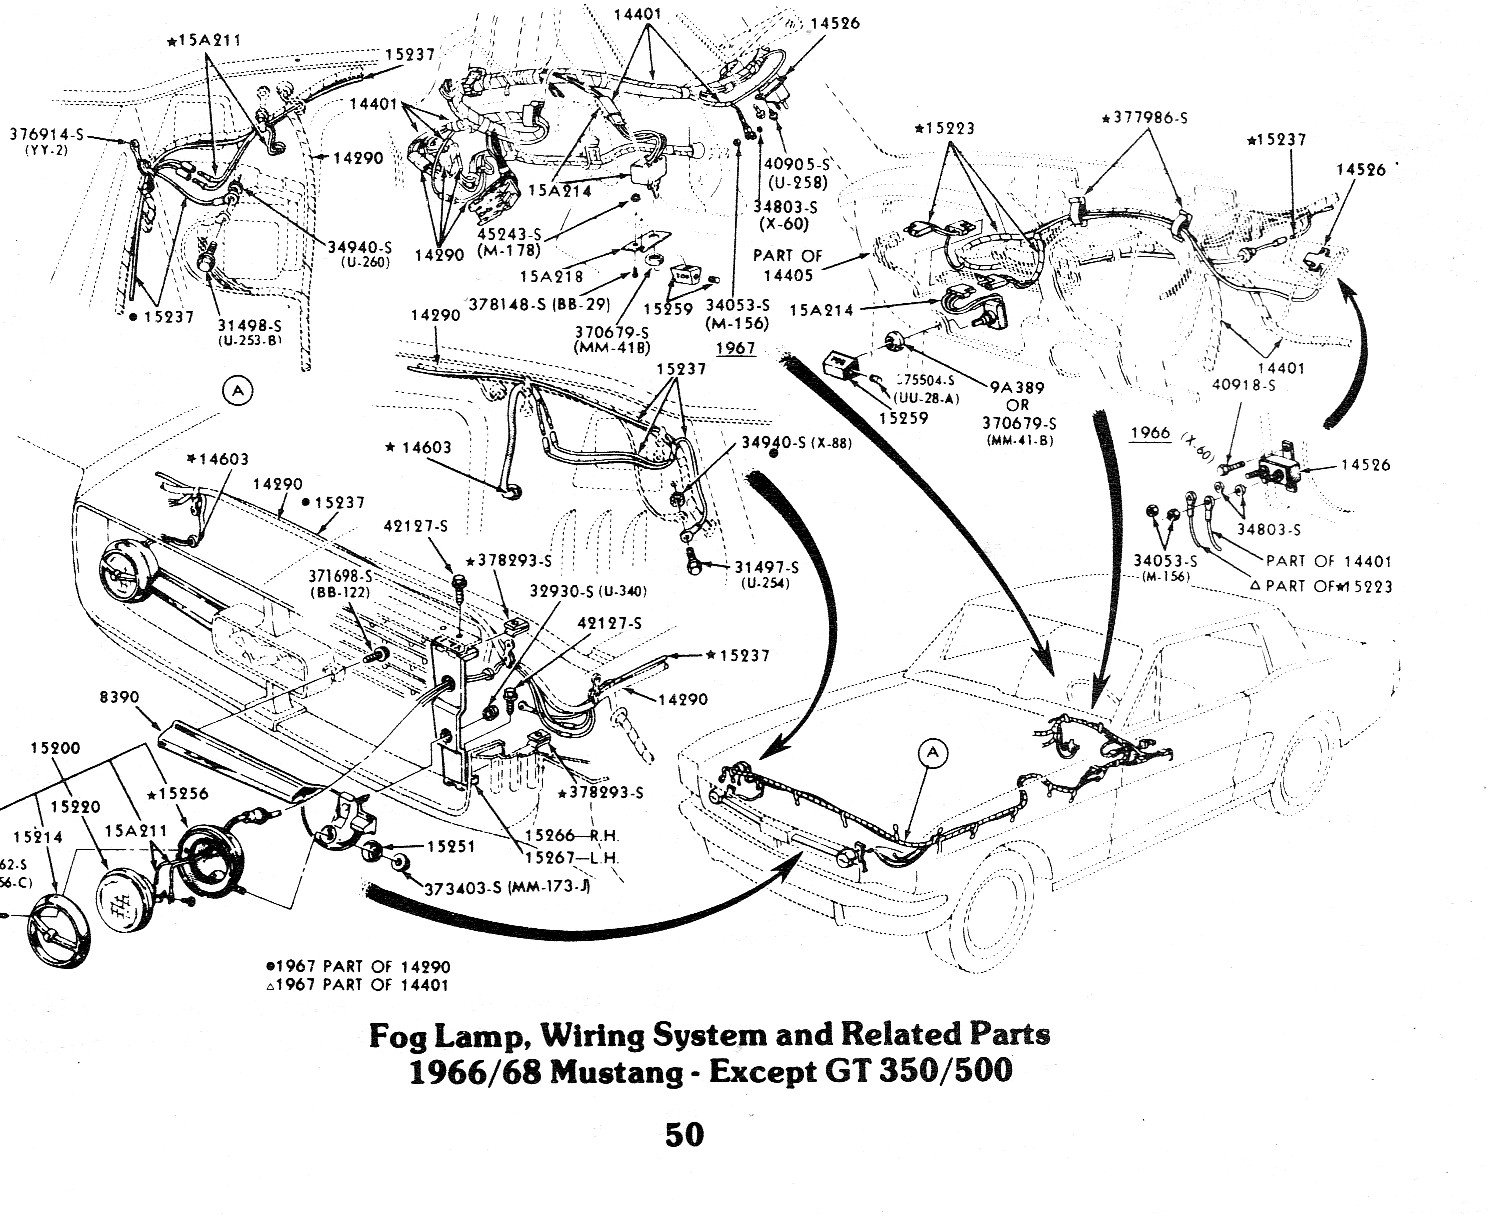 [DIAGRAM_3ER]  Fog light wiring on a 1968 Mustang | Ford Mustang Forum | Light Switch Wiring Diagram 1968 Mustang |  | All Ford Mustangs